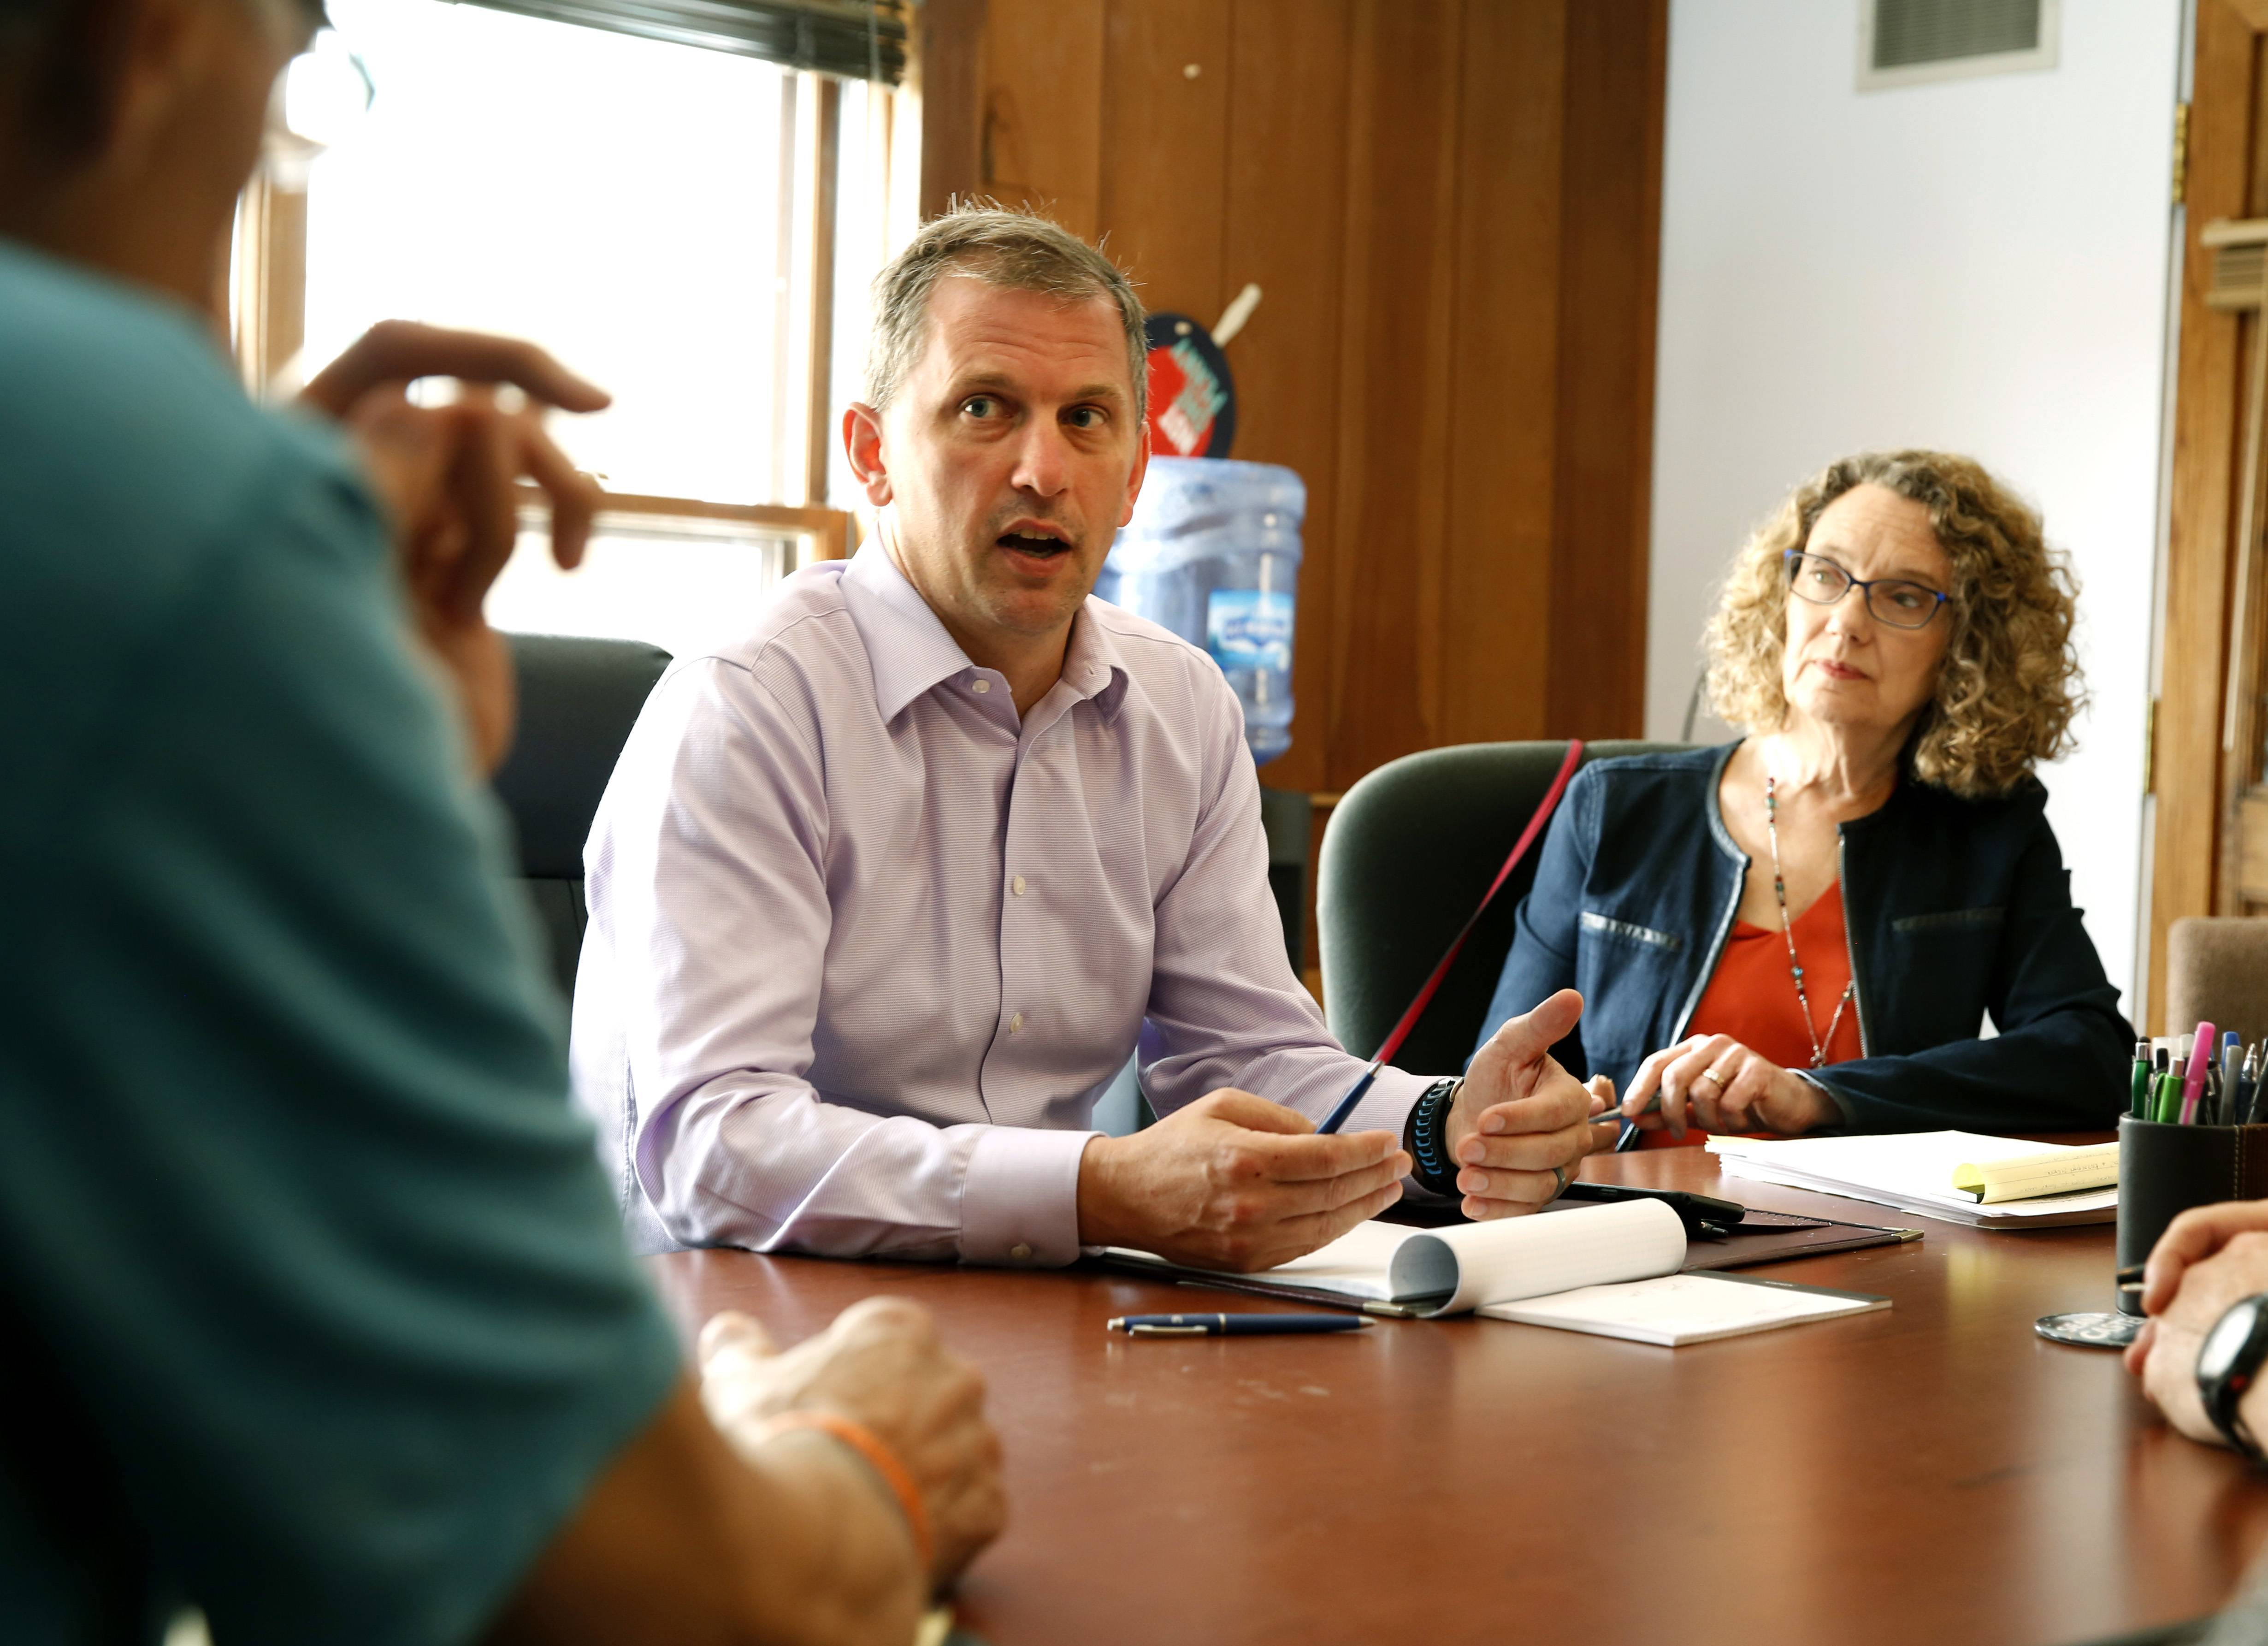 Casten hits trail discussing issues like health care, labor policy, climate change